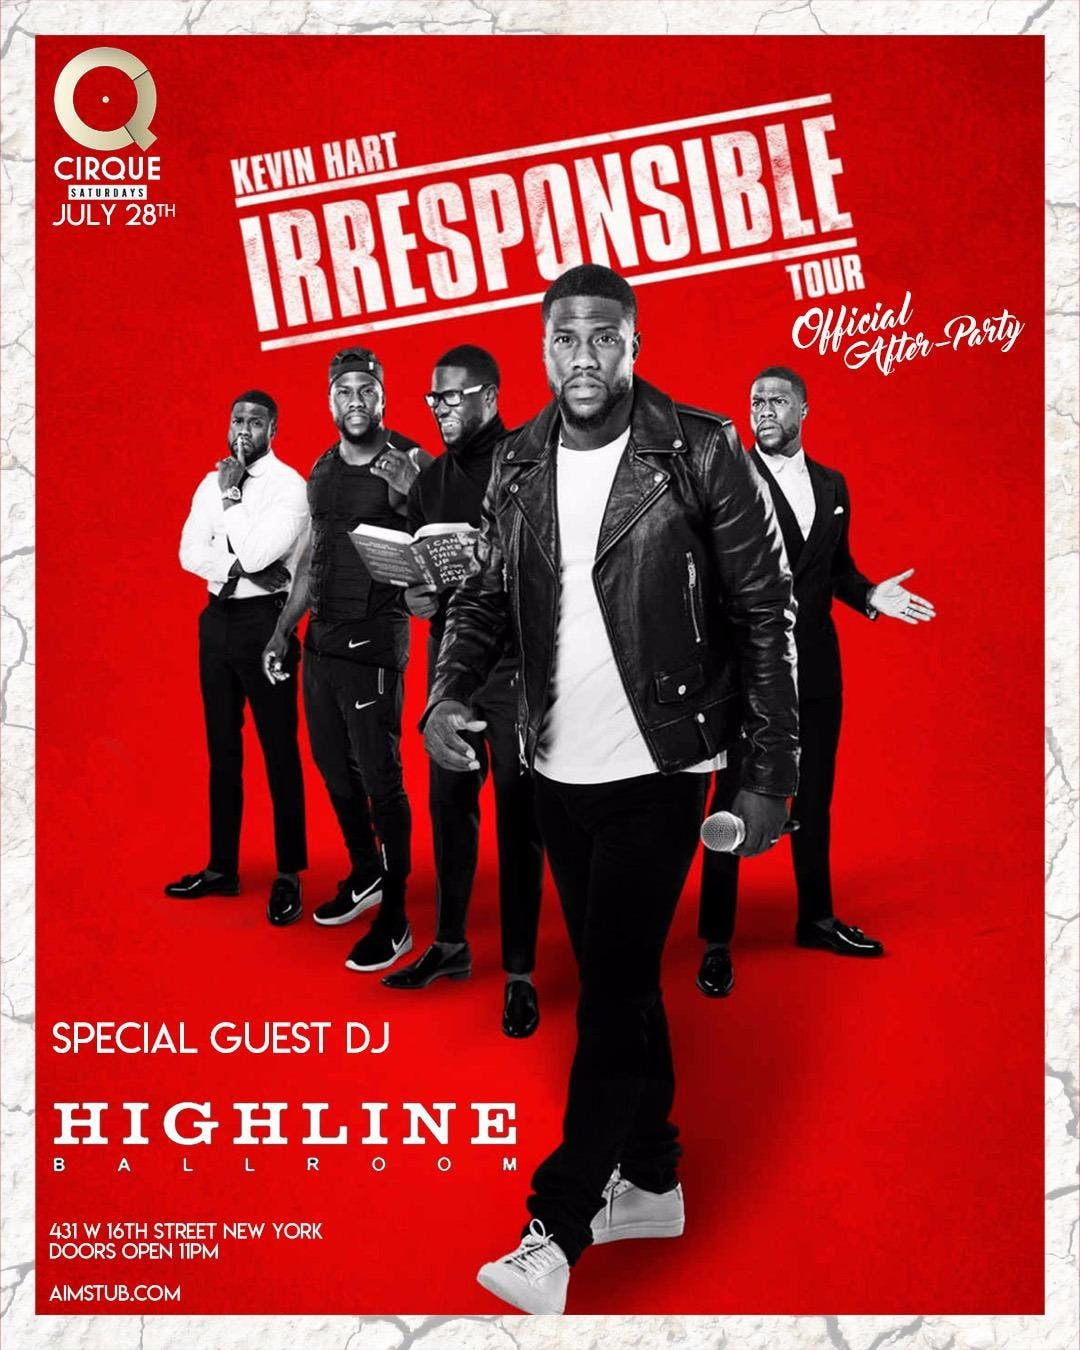 Kevin Hart Irresponsible Tour Official Afterp